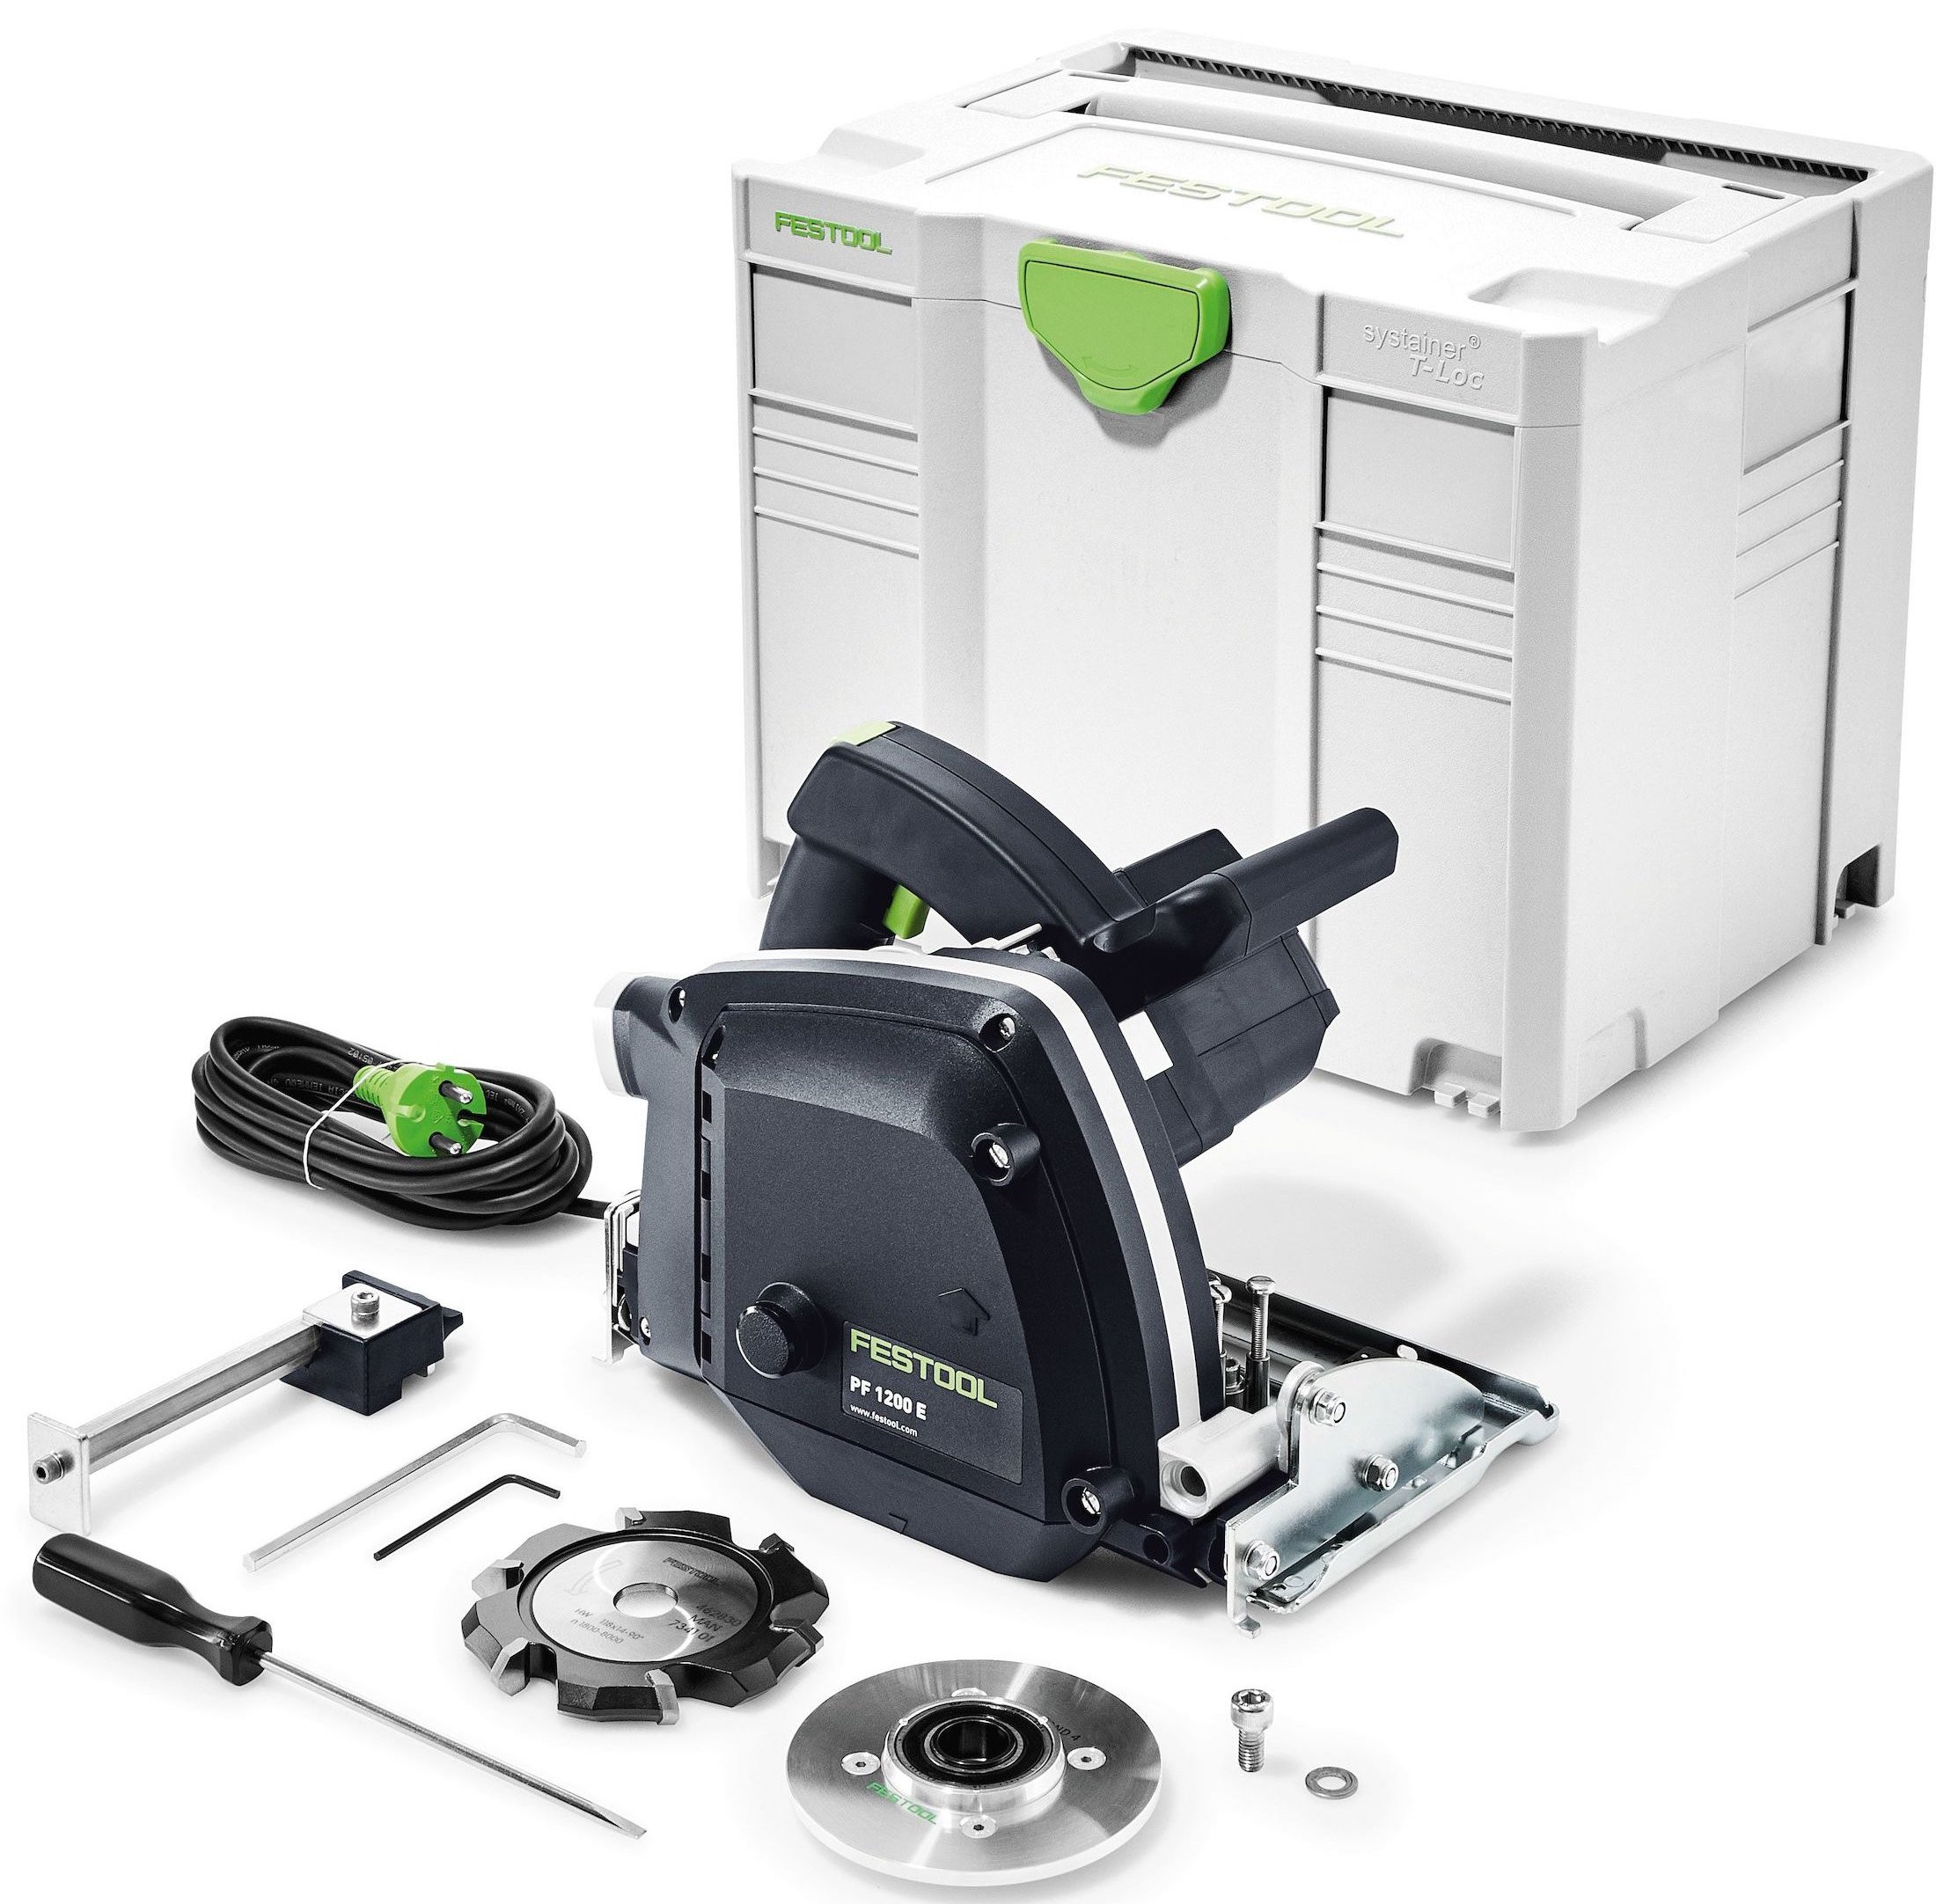 Festool PF 1200 E-Plus Dibond | 1200w - 574322